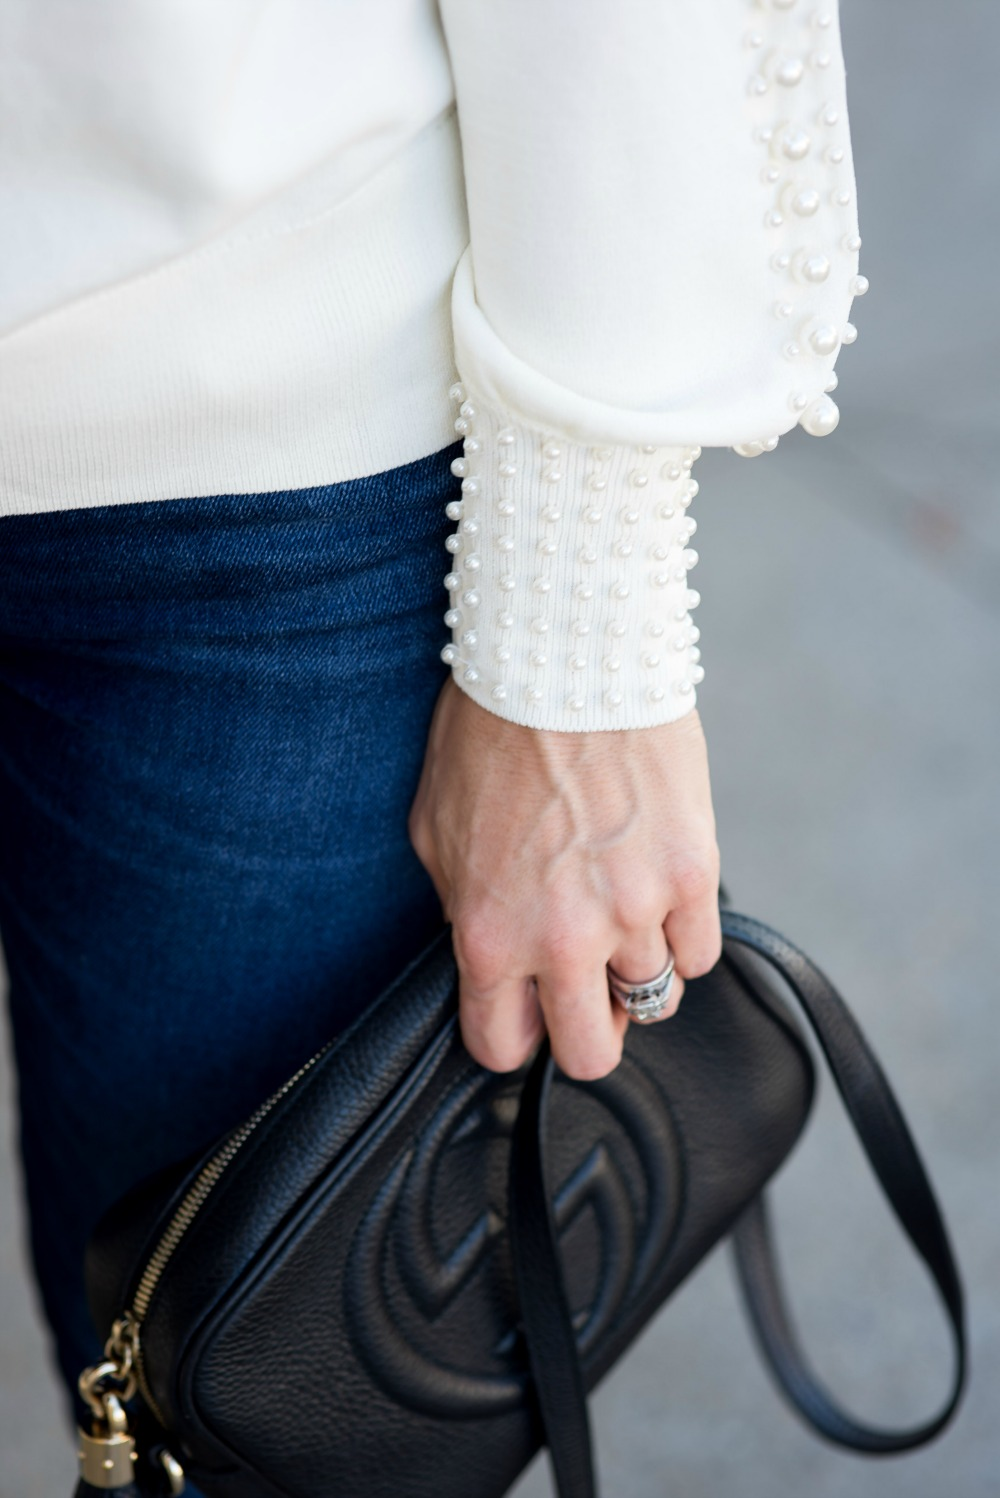 All about the pearl details // @themodernsavvy